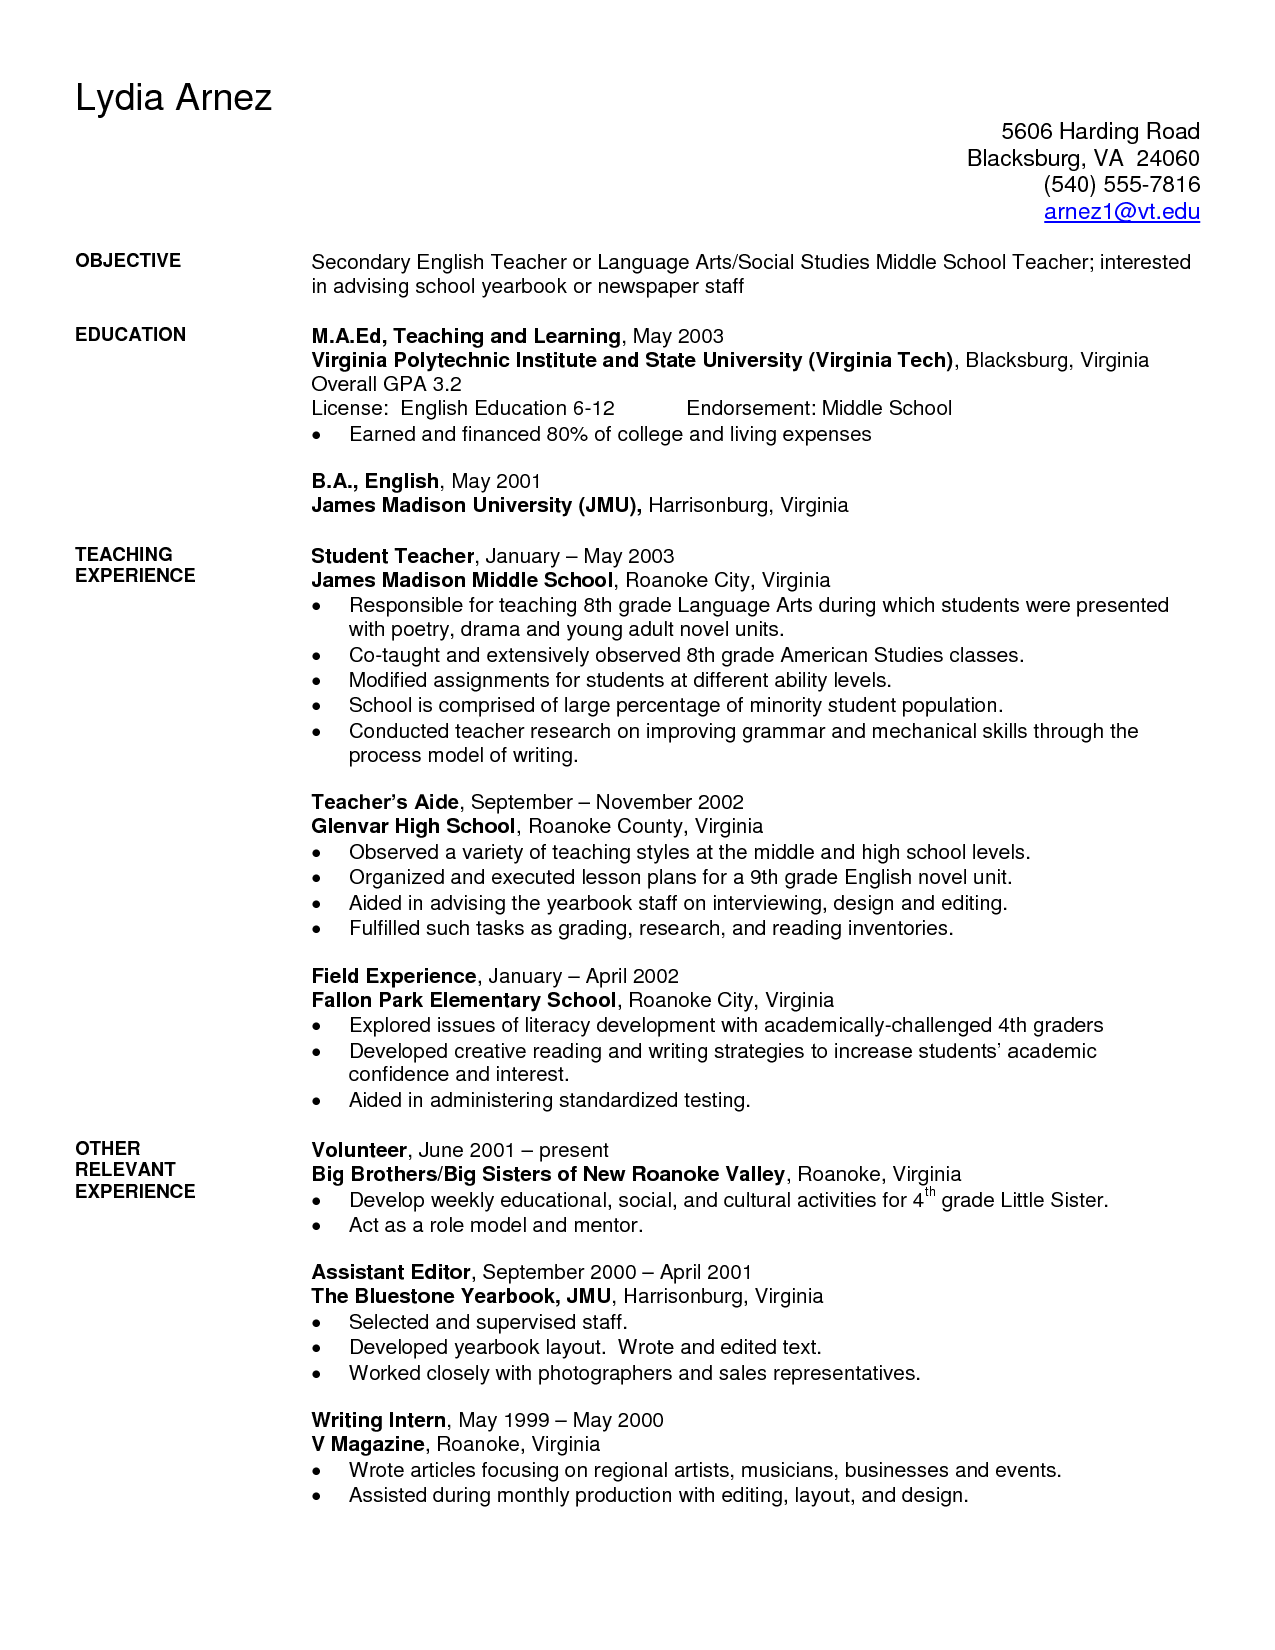 art director resumes | Art Director Resume | Design a Job ...